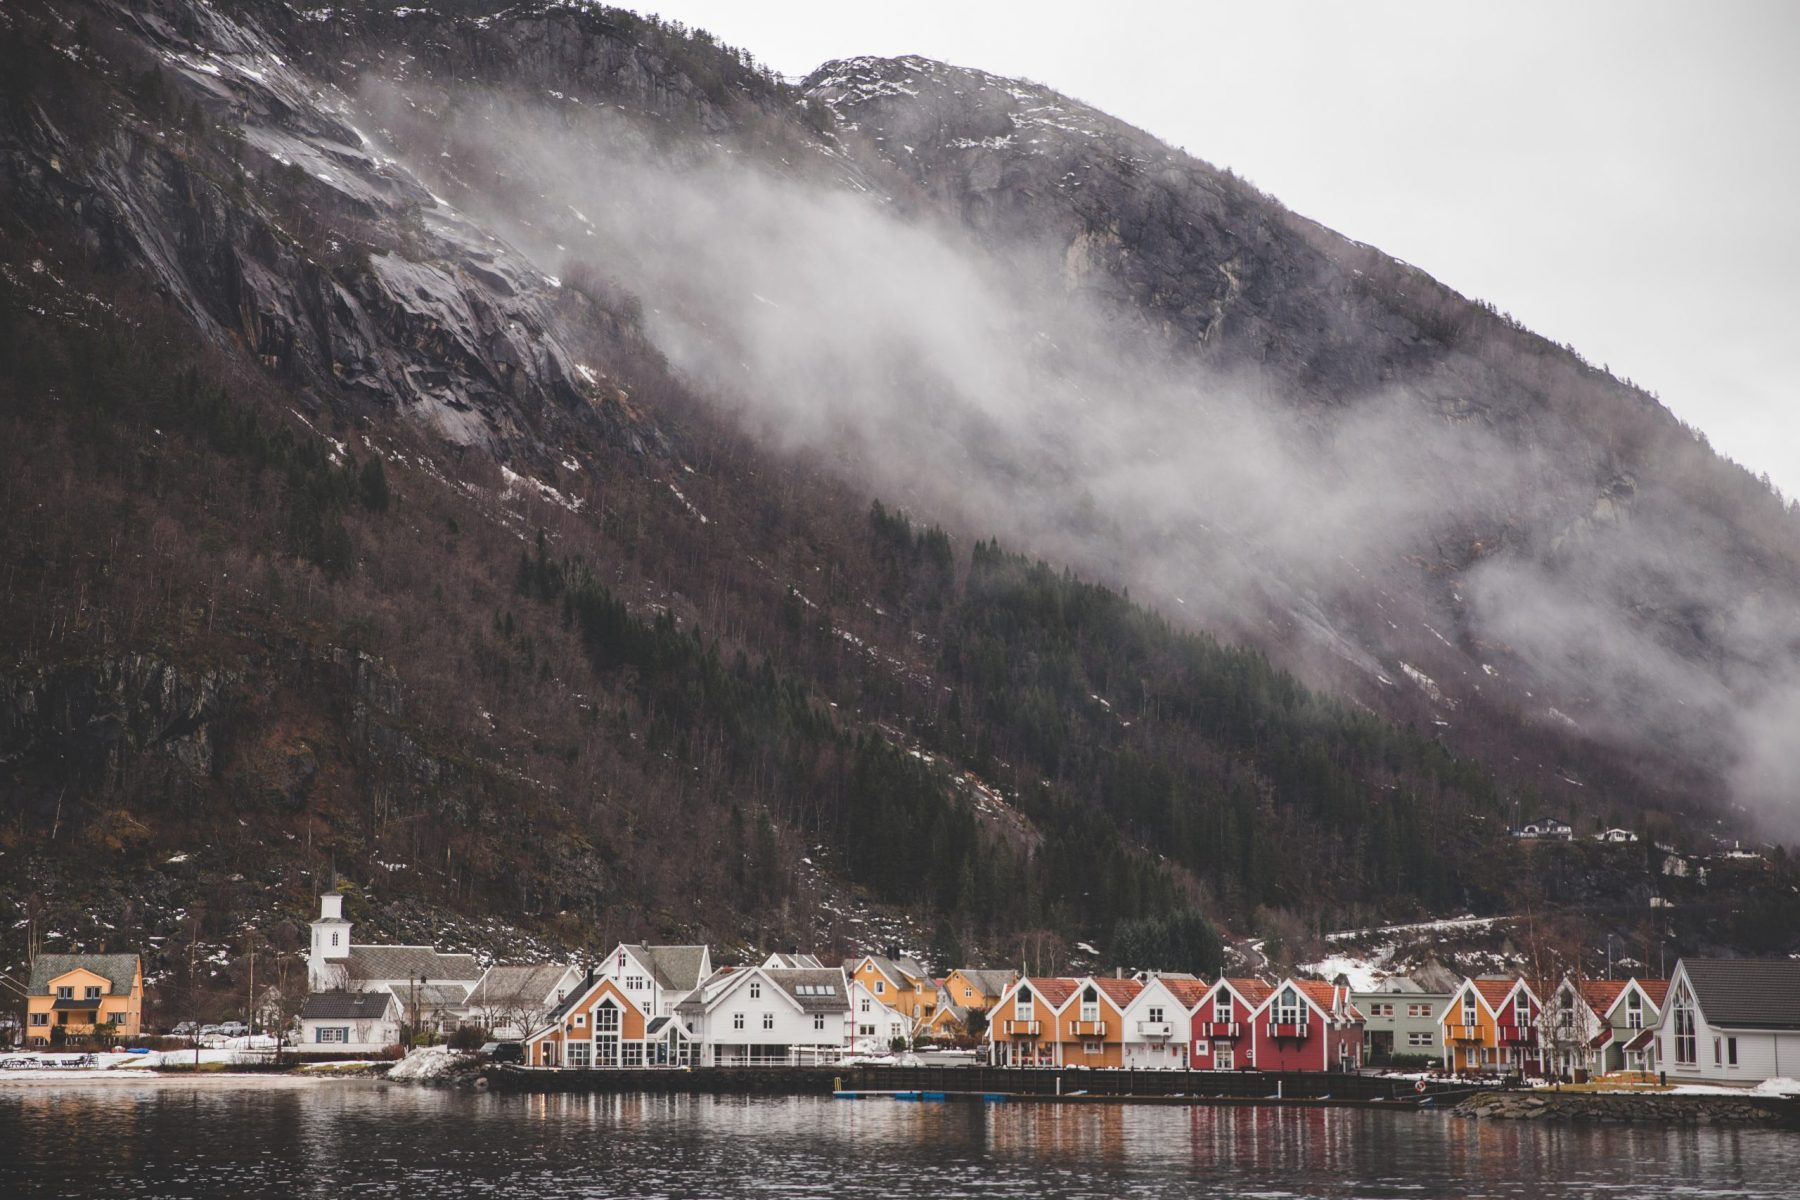 View of the village of Mo and its white, yellow, and red houses from the Rødne Fjord Cruise Boat with mountains and fog in the background